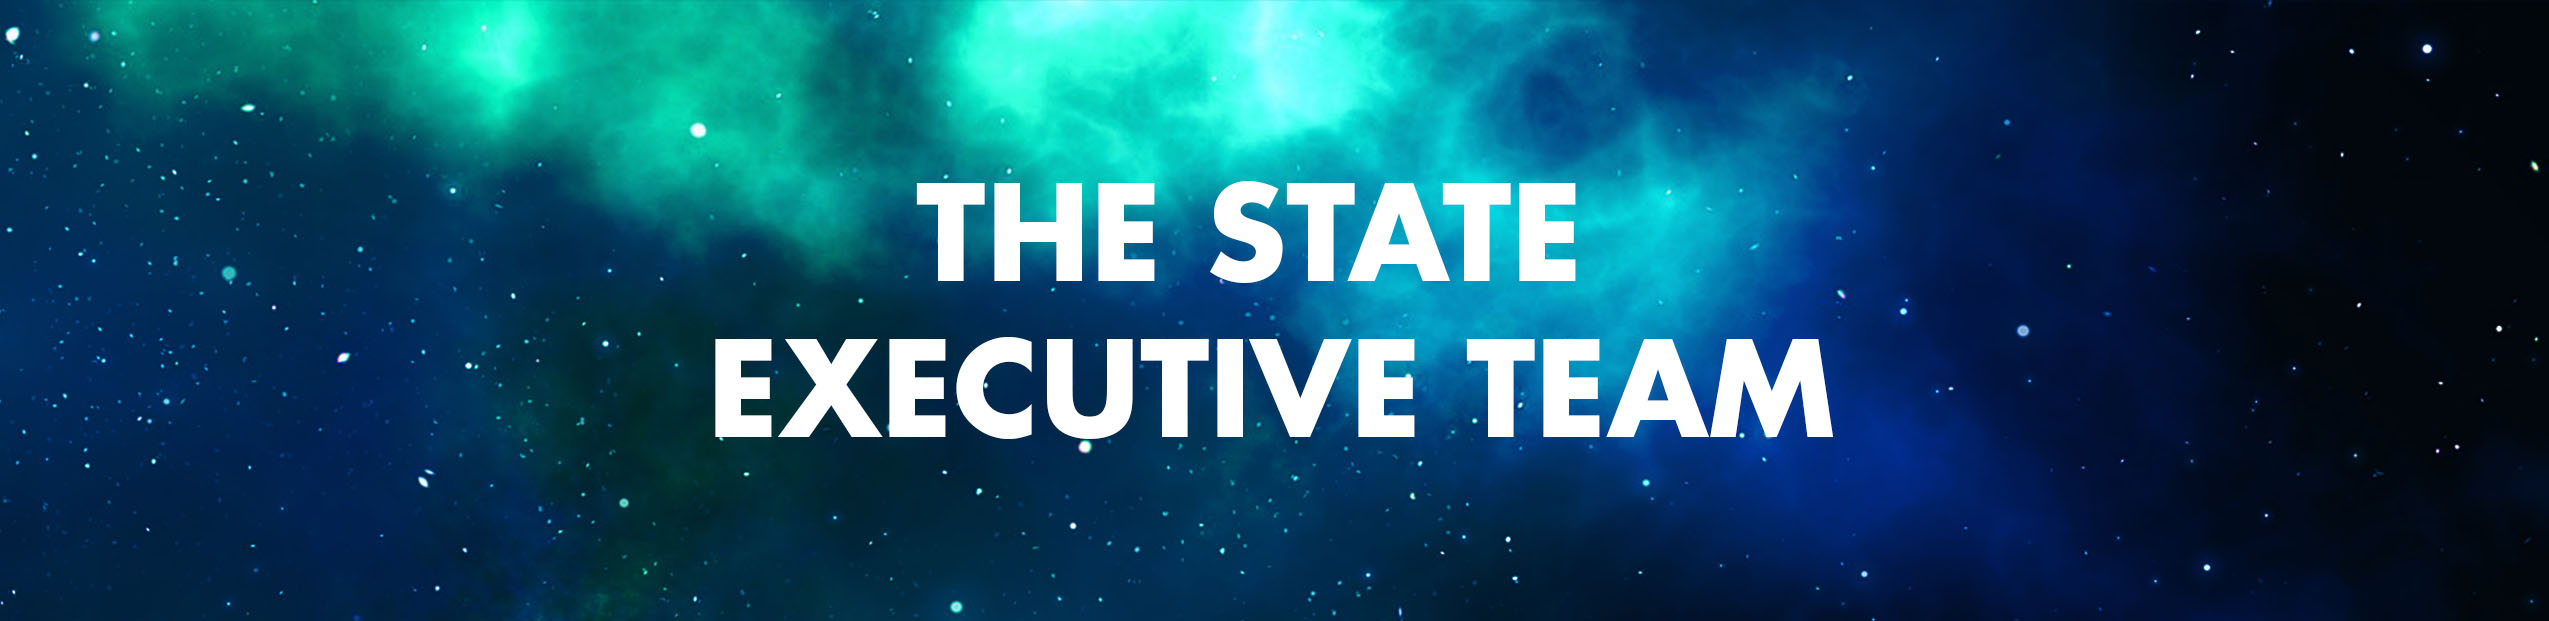 BBV theStateExecutiveTeam